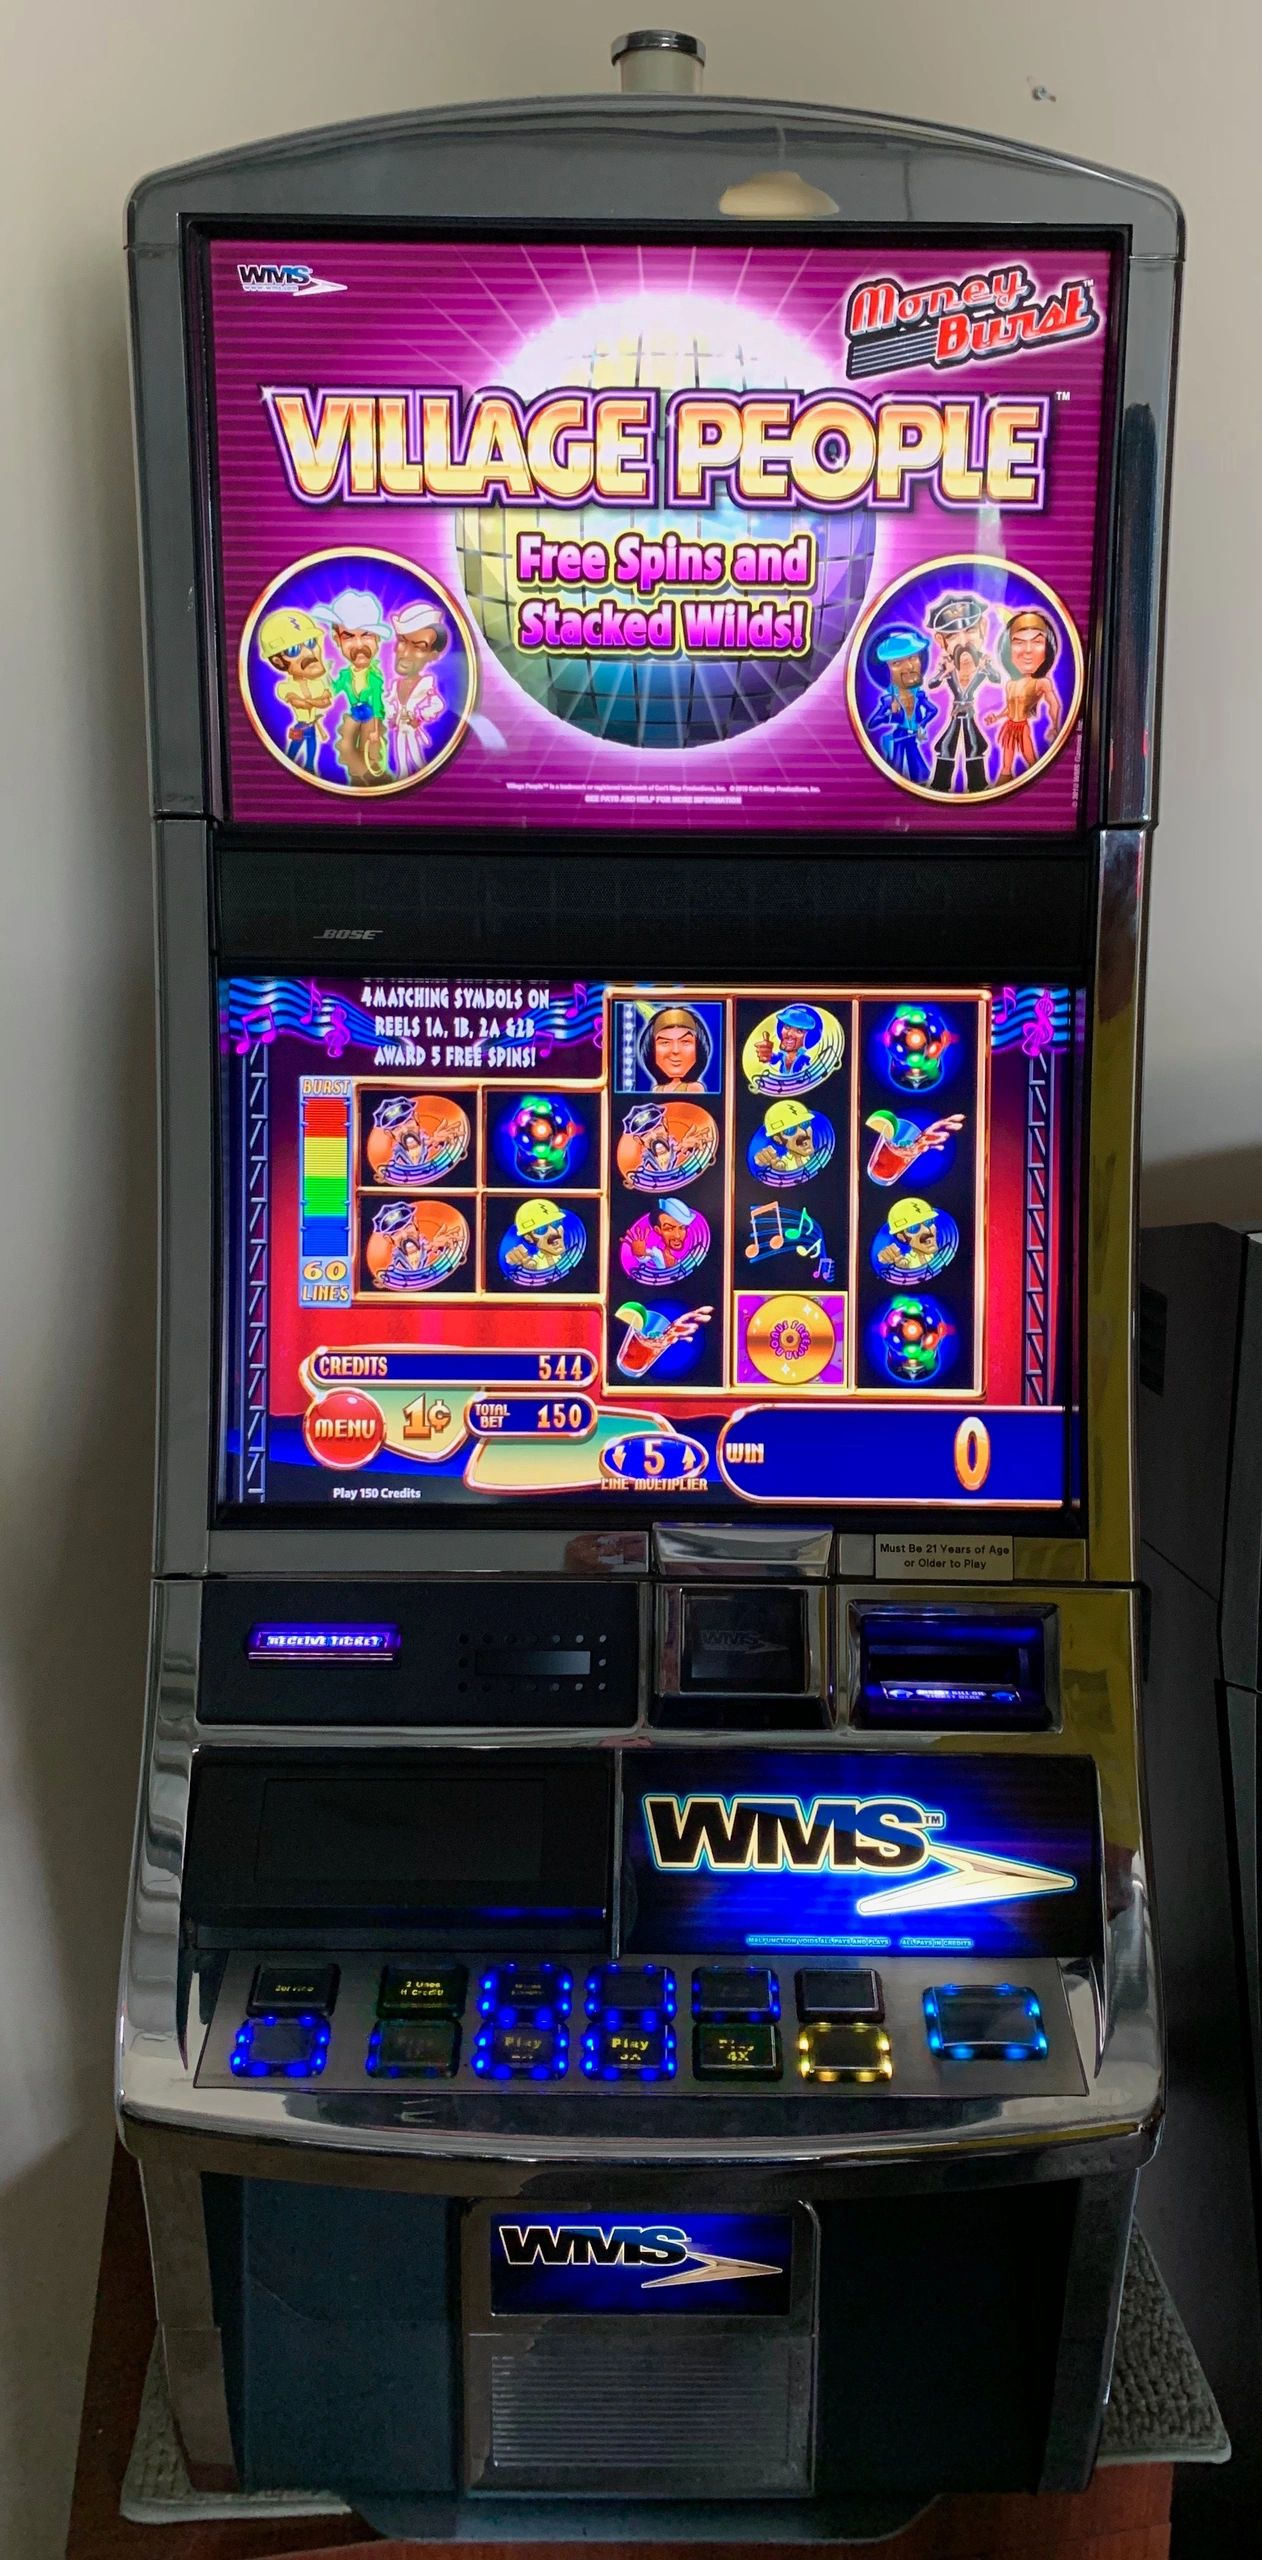 List of wms slot machines clearing hands casino games